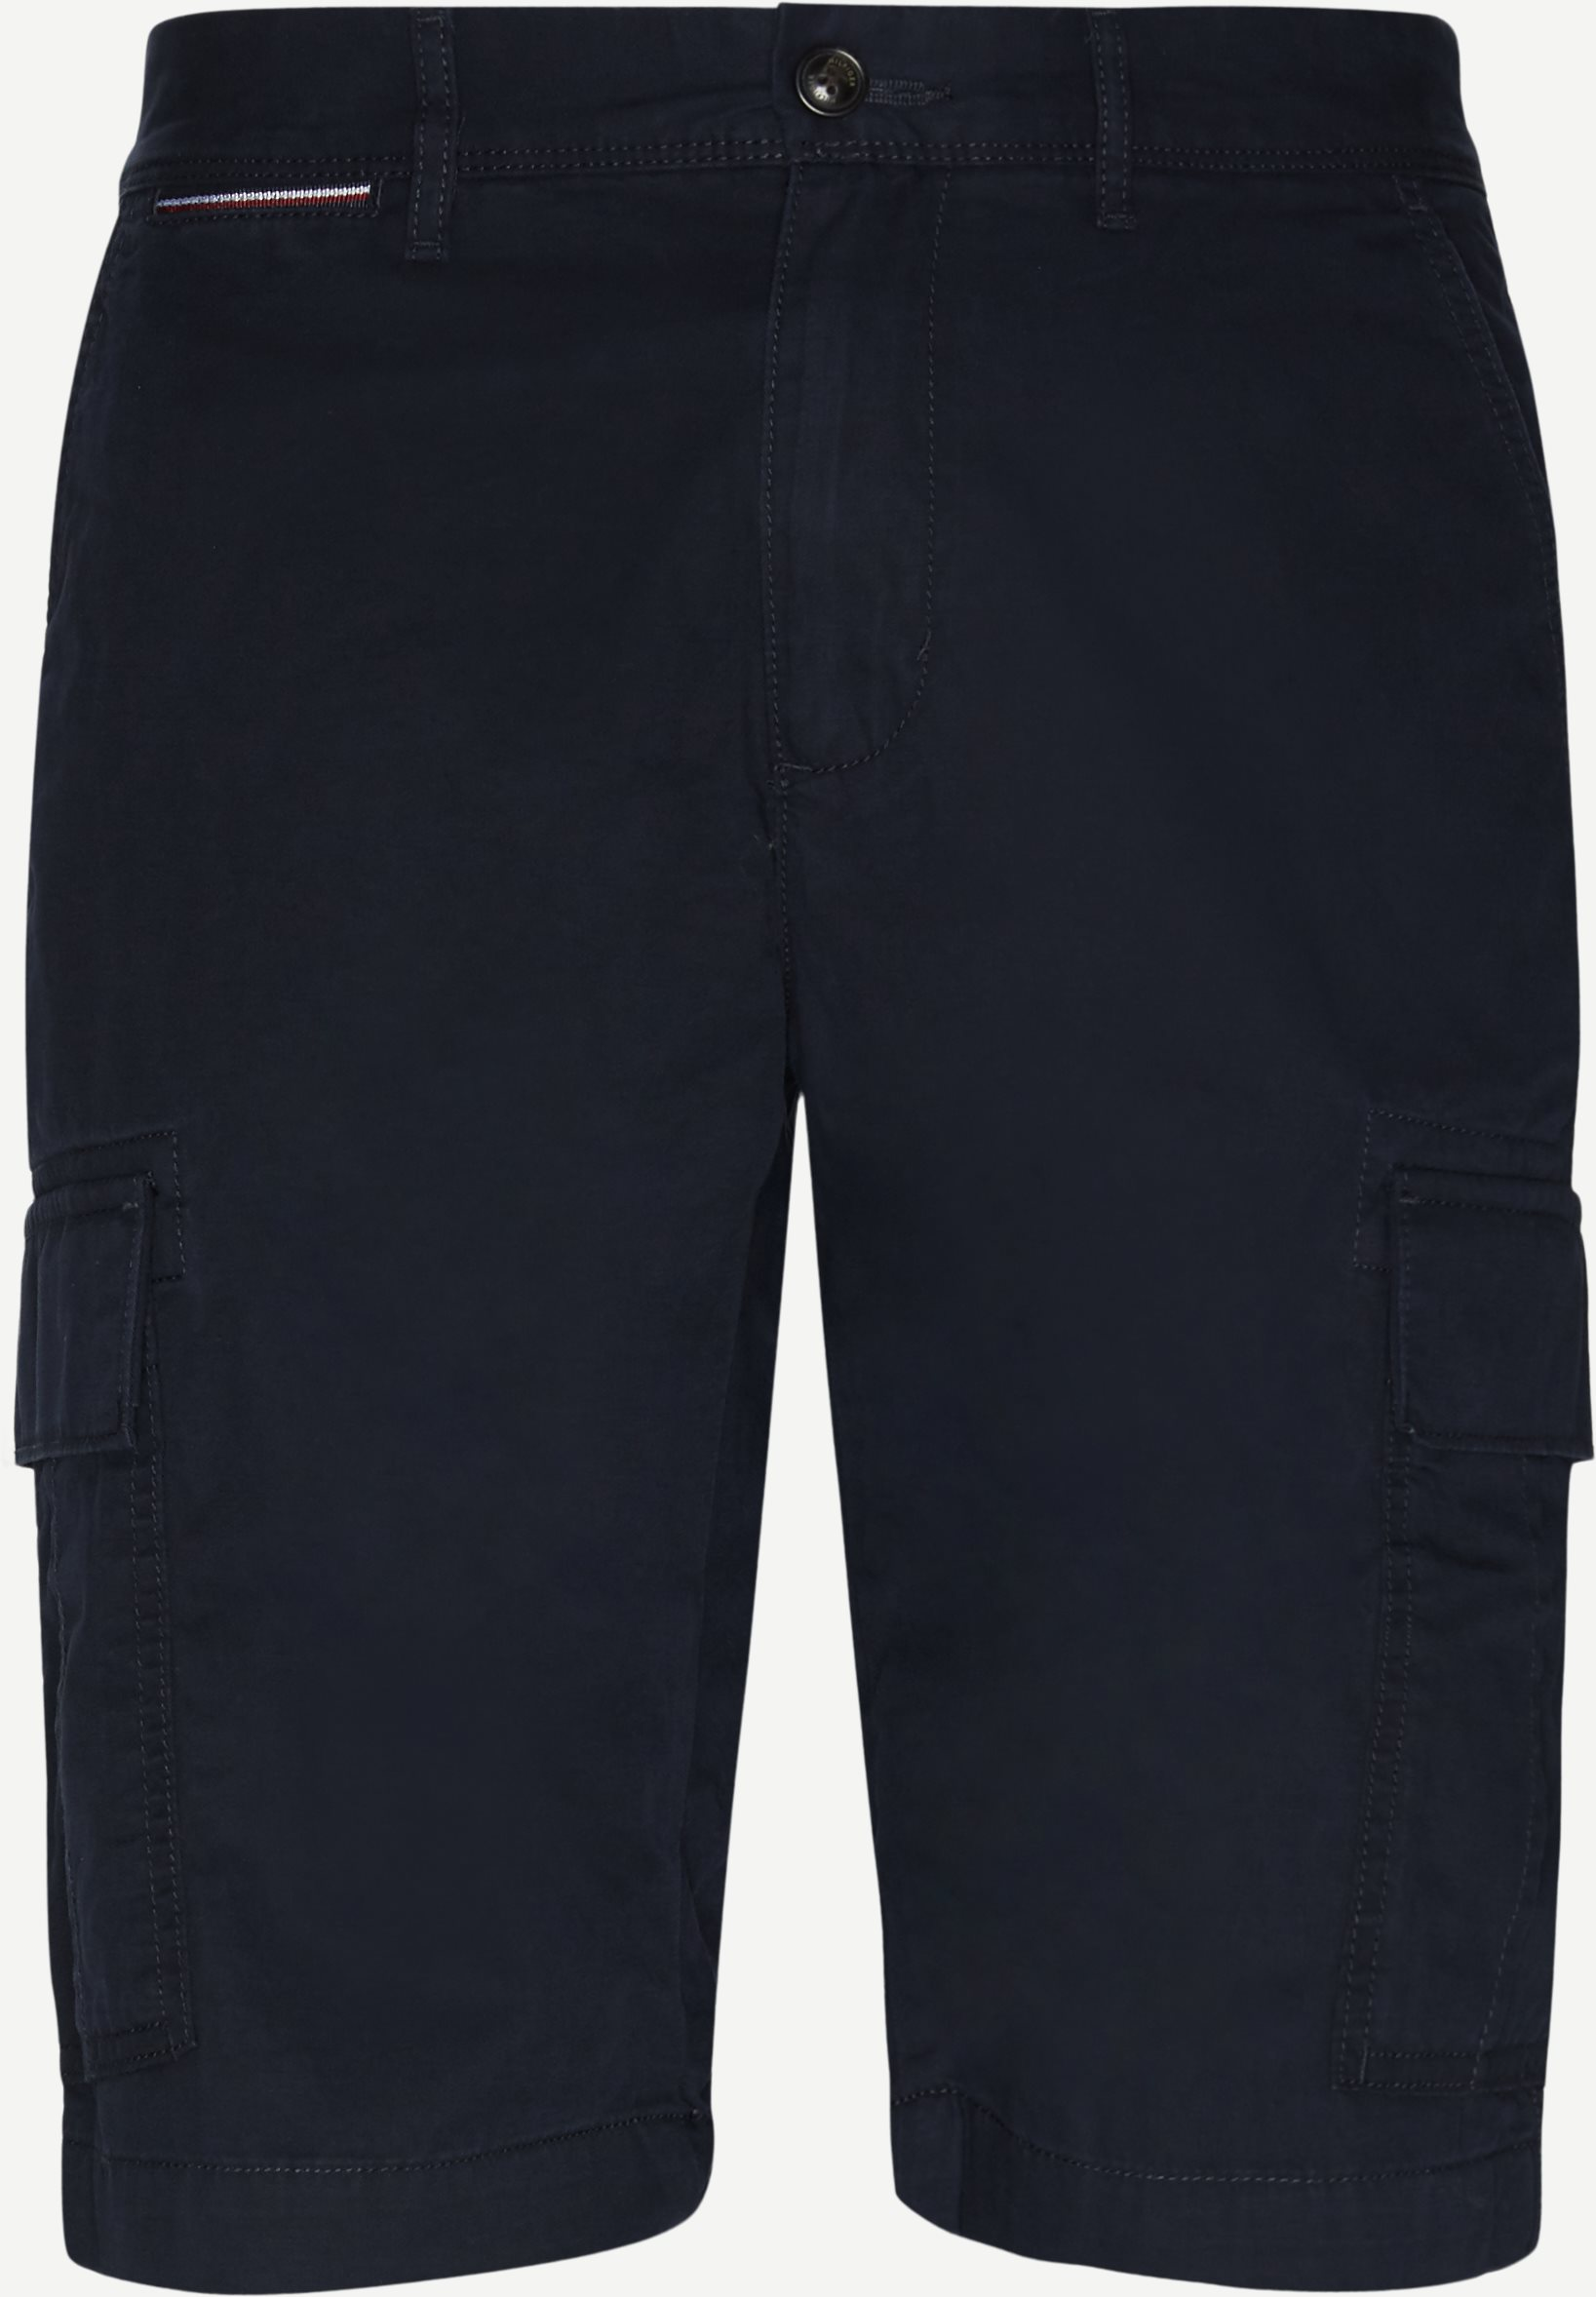 Shorts - Regular - Blue